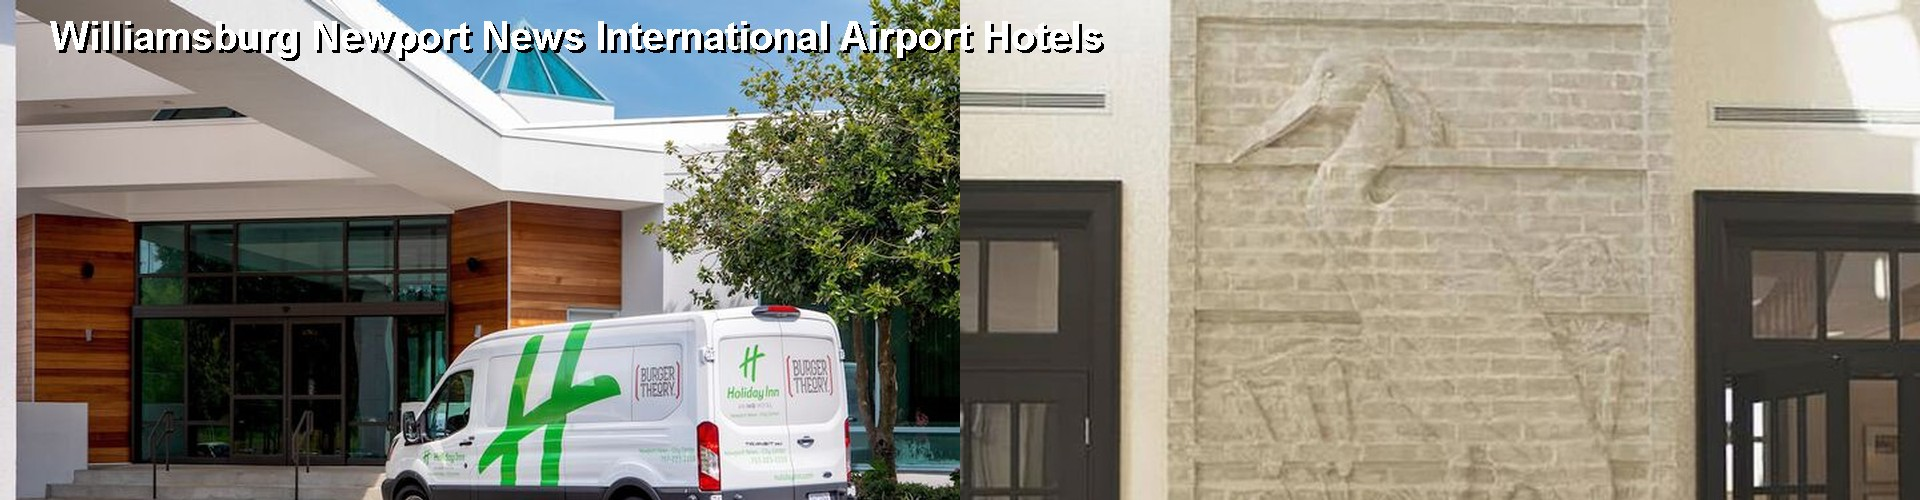 5 Best Hotels near Williamsburg Newport News International Airport